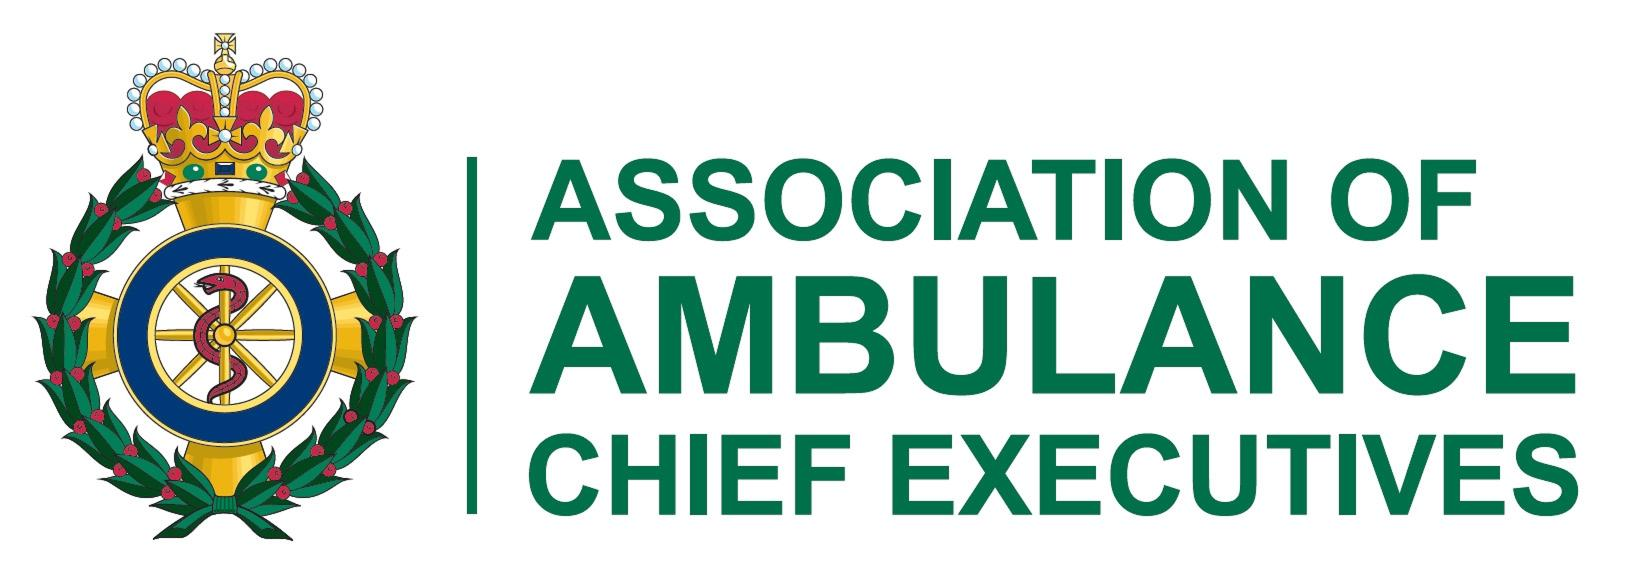 Association of Ambulance Chief Executives